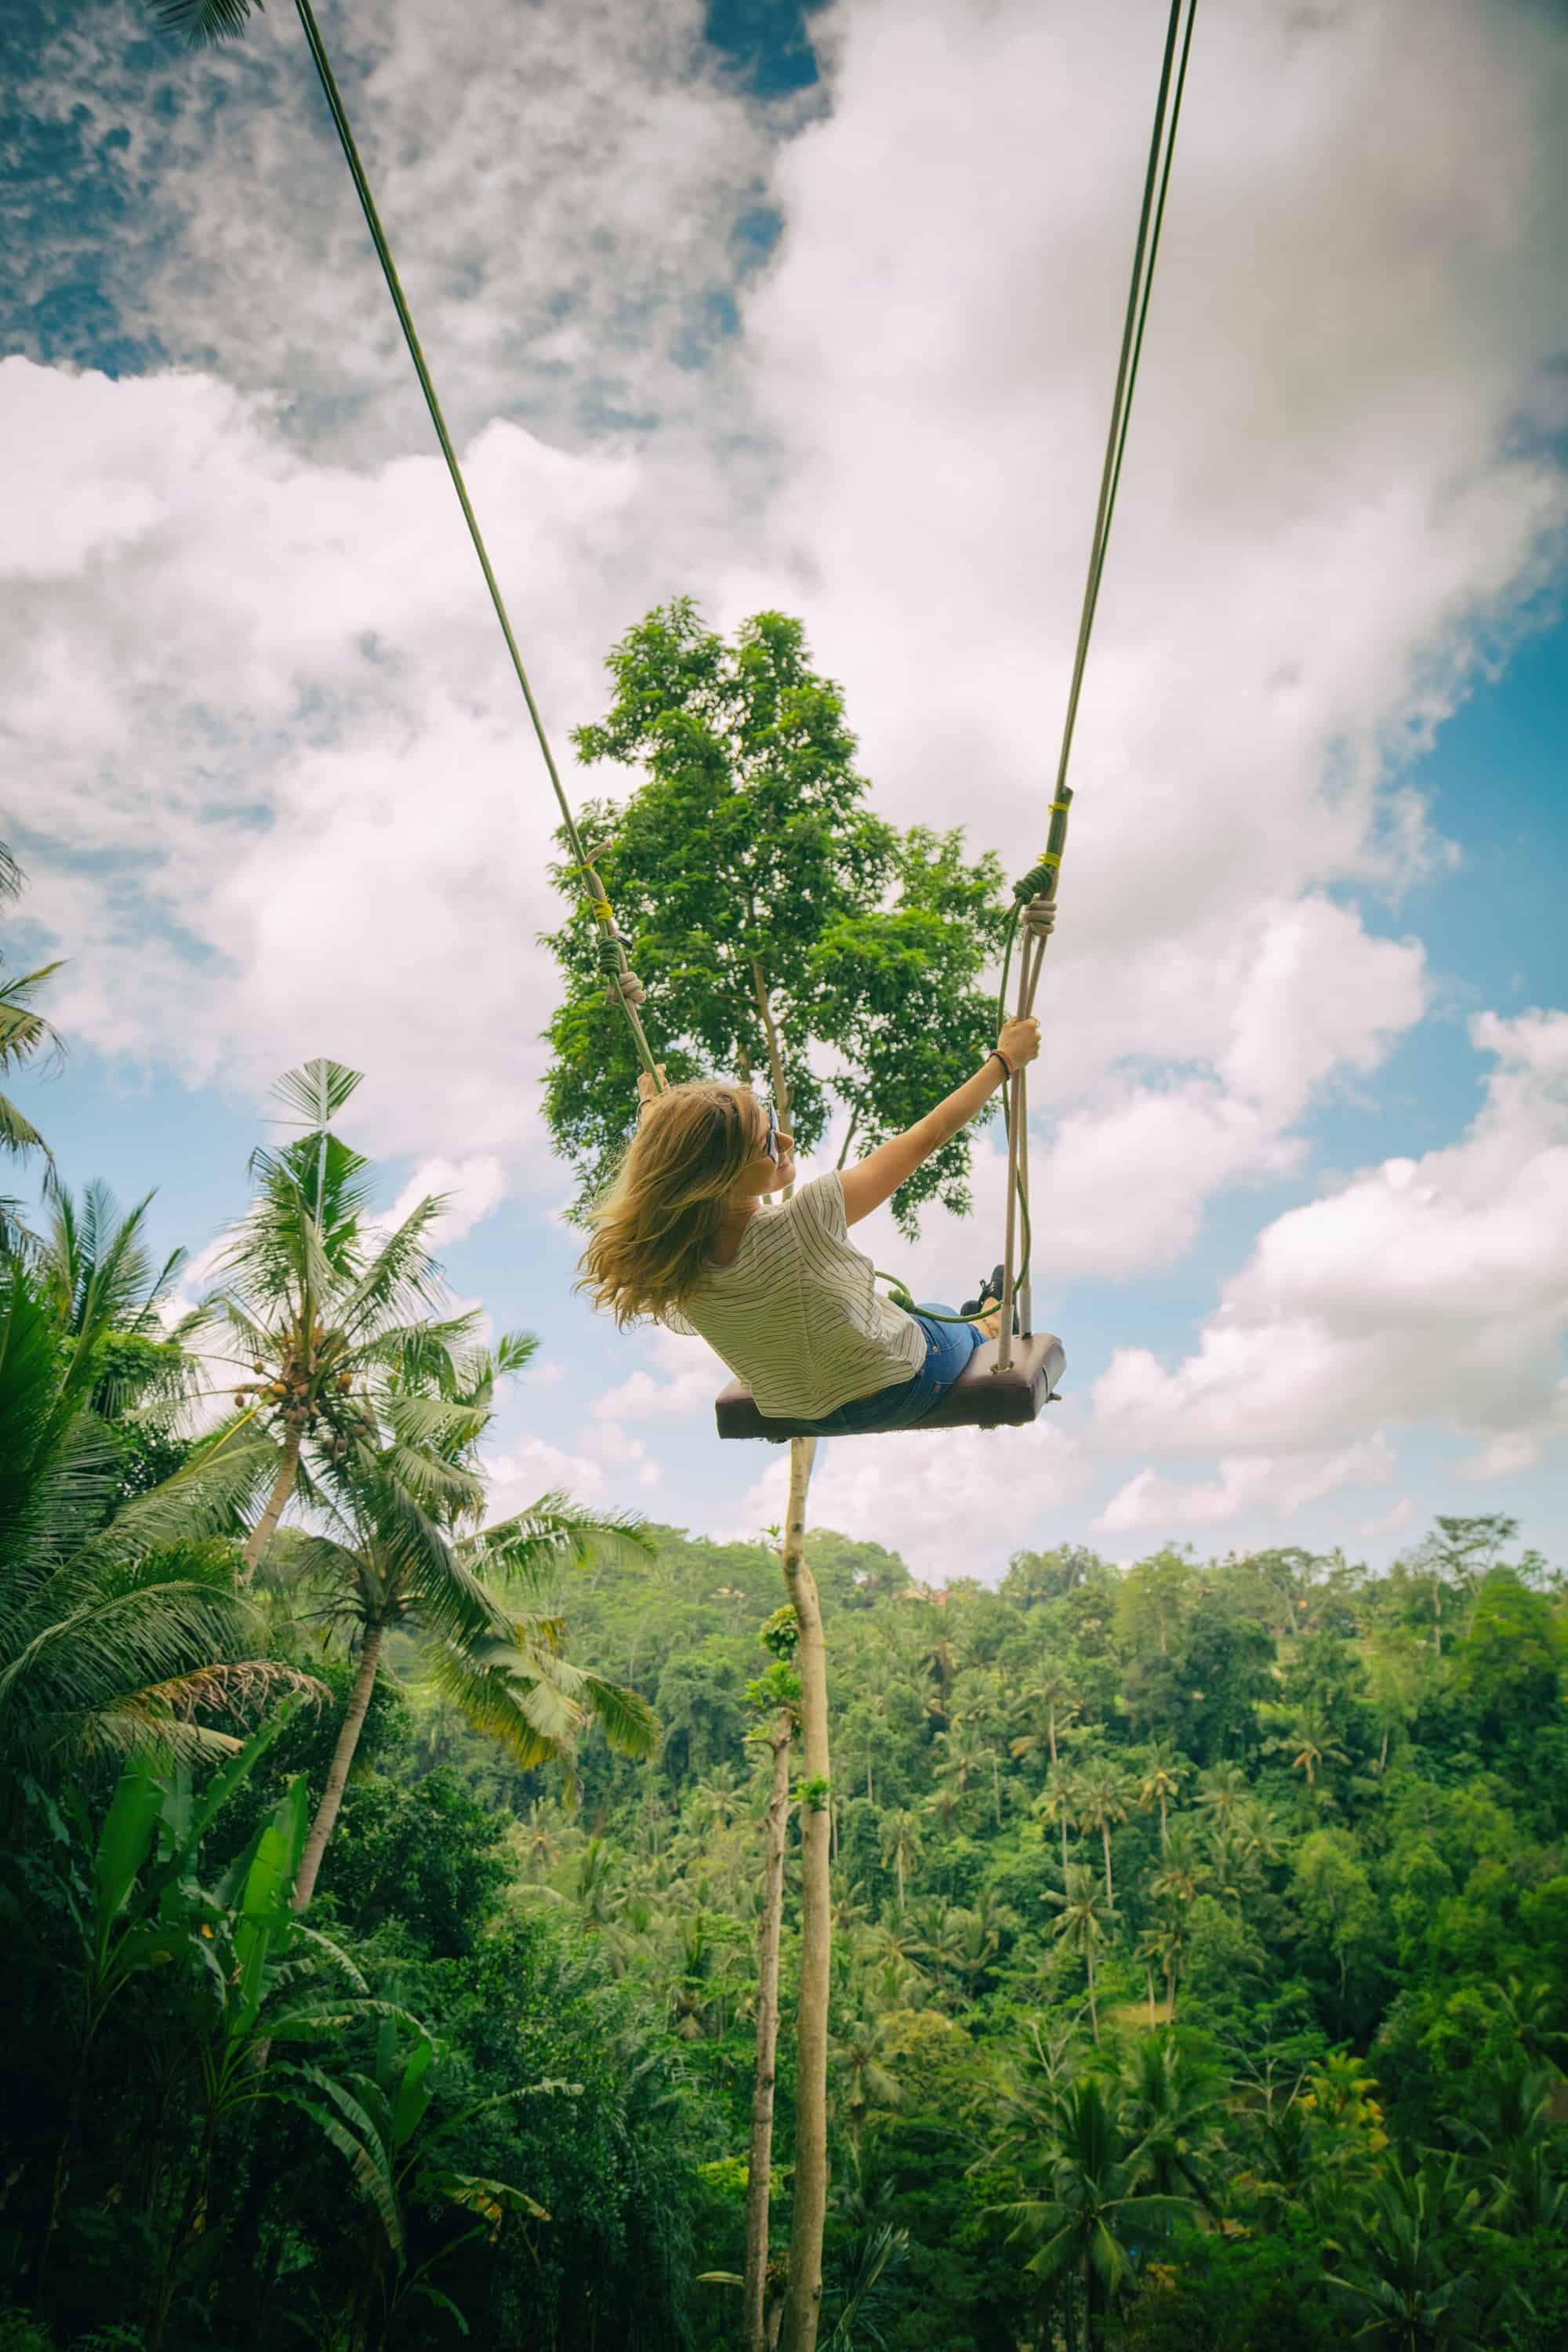 Jane in the Jungle of Life